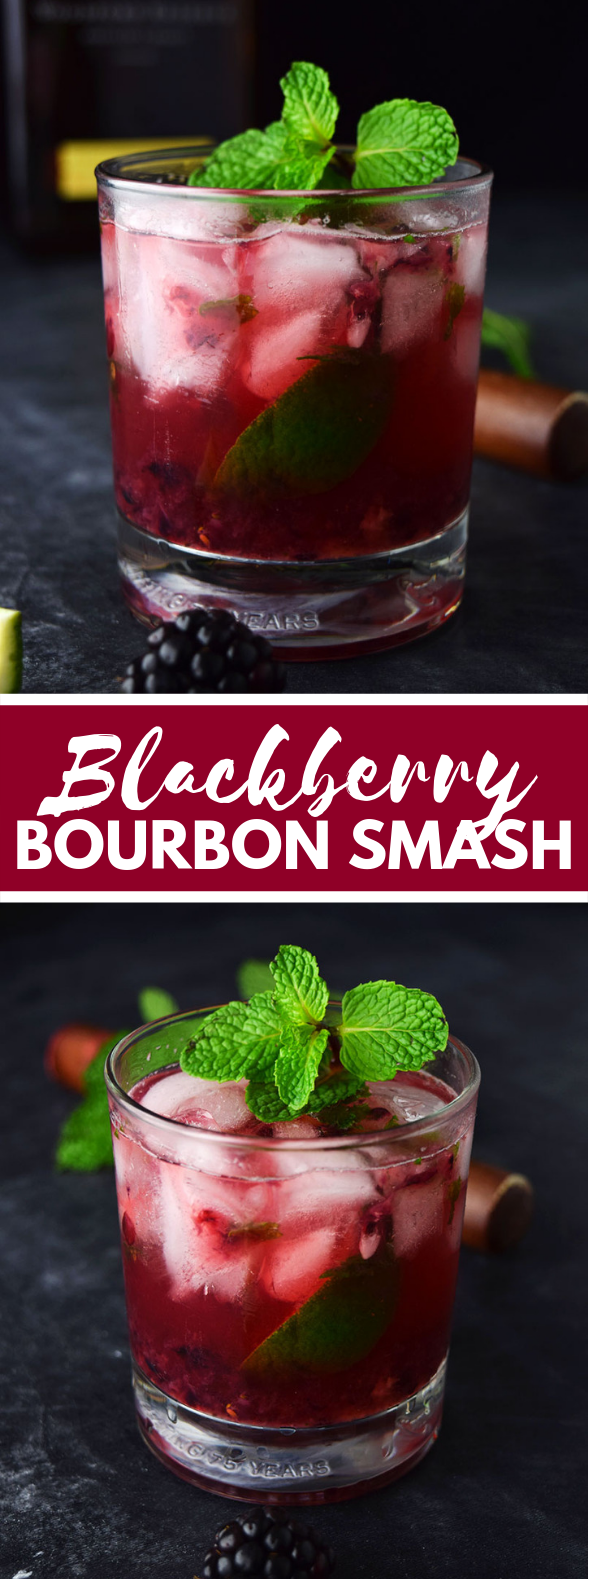 Blackberry Bourbon Smash (Whiskey Smash Recipe) #cocktails #drinks